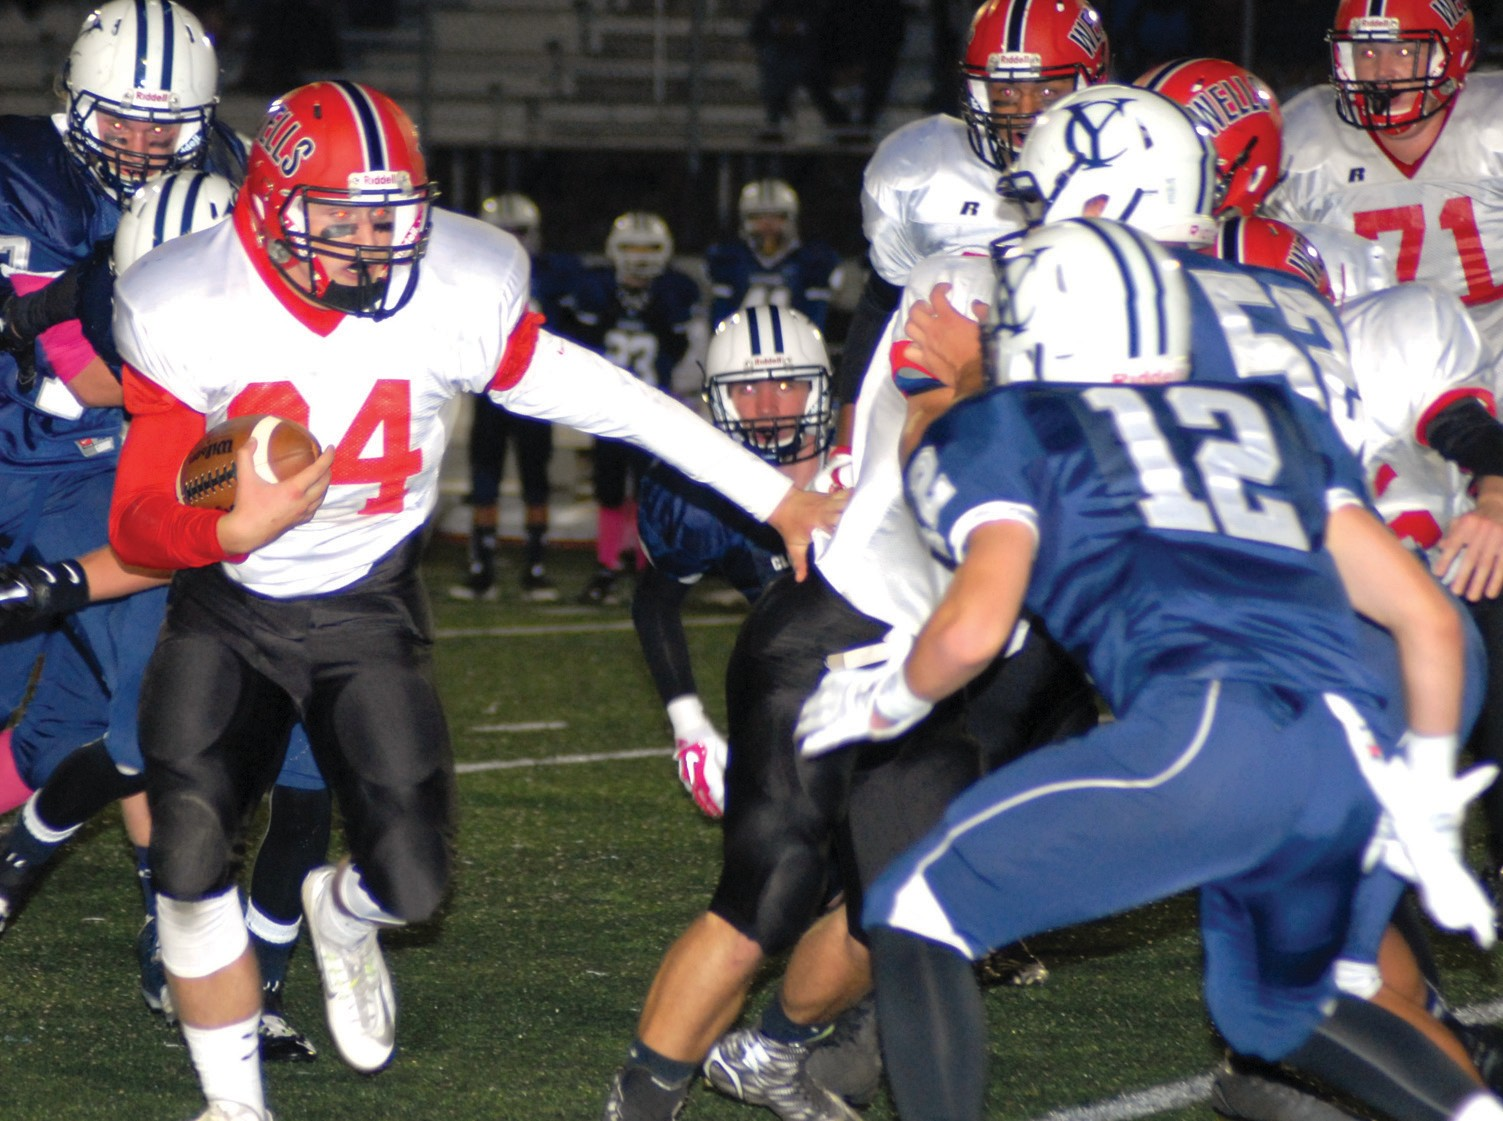 Wells running back Jake Spofford picks up some yards during Friday night's game at Yarmouth.